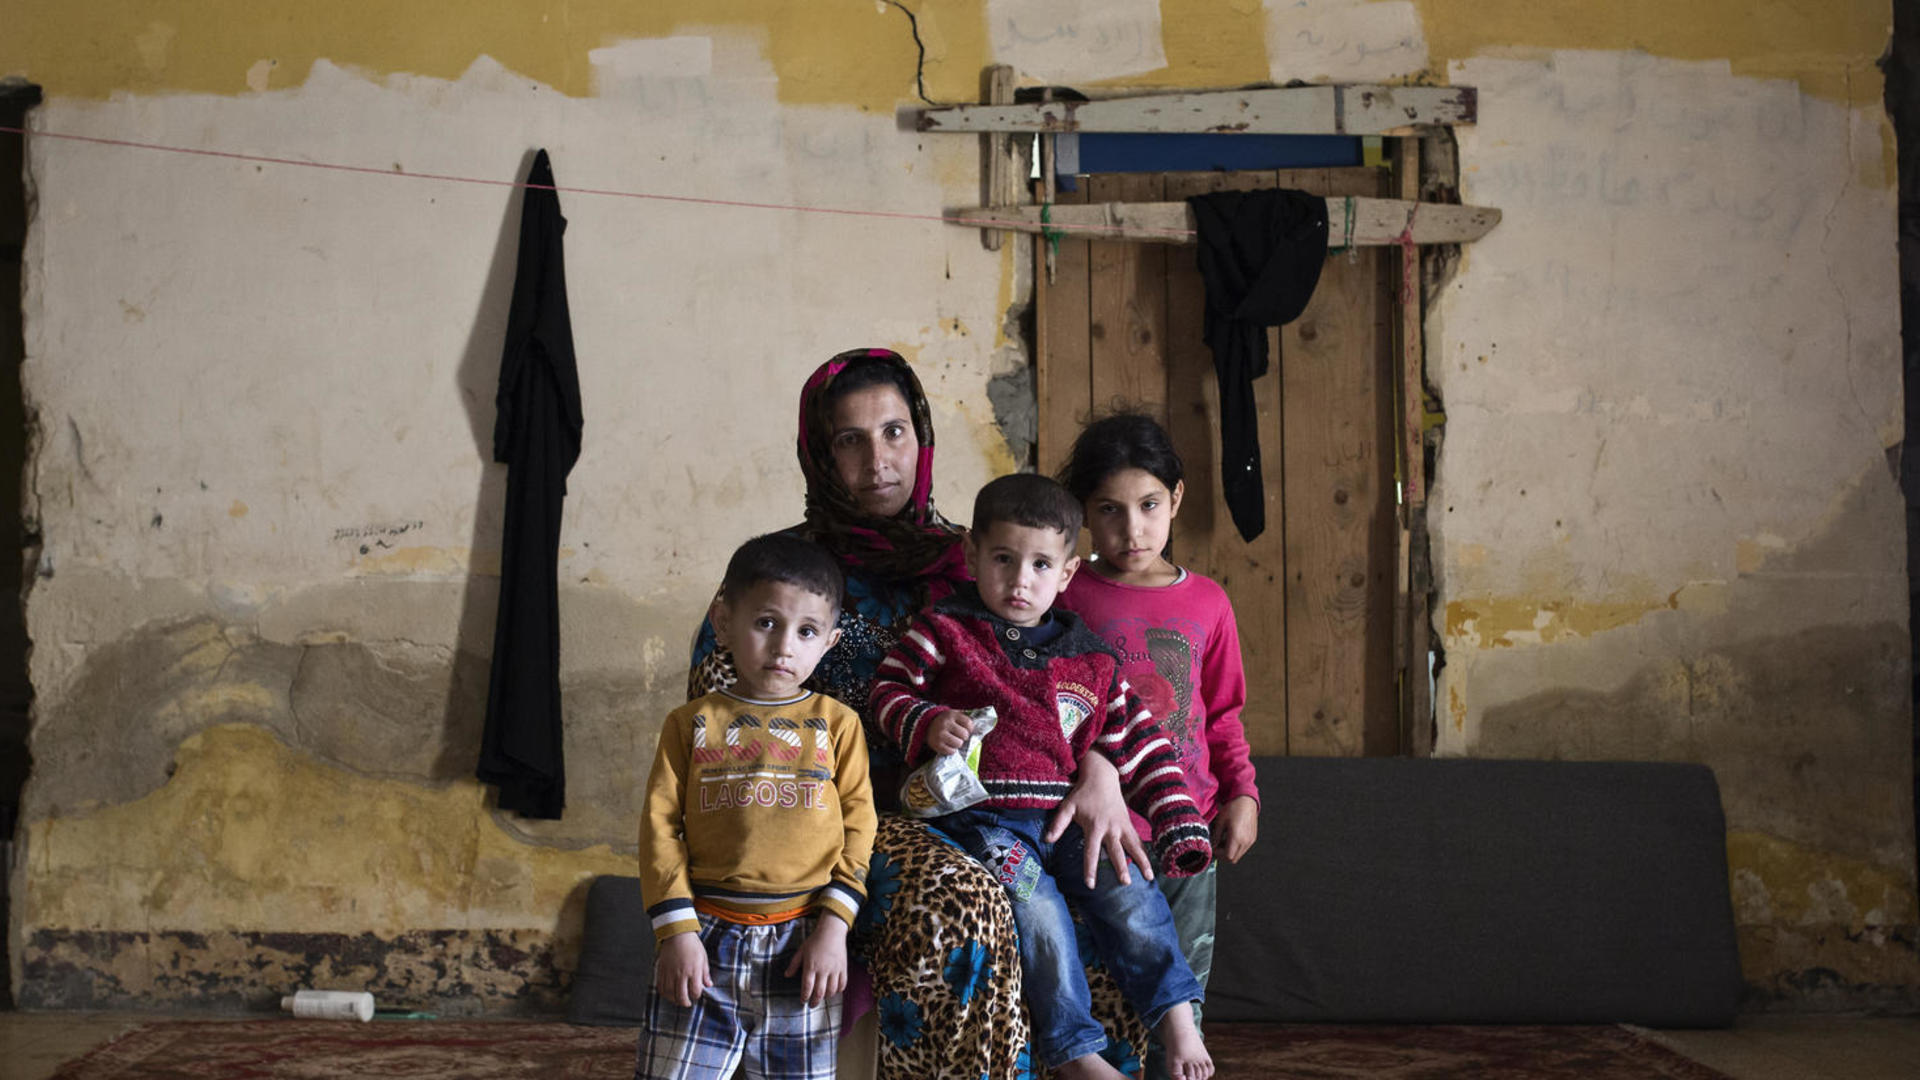 A Syrian family living as refugees in an abandoned building in Lebanon.